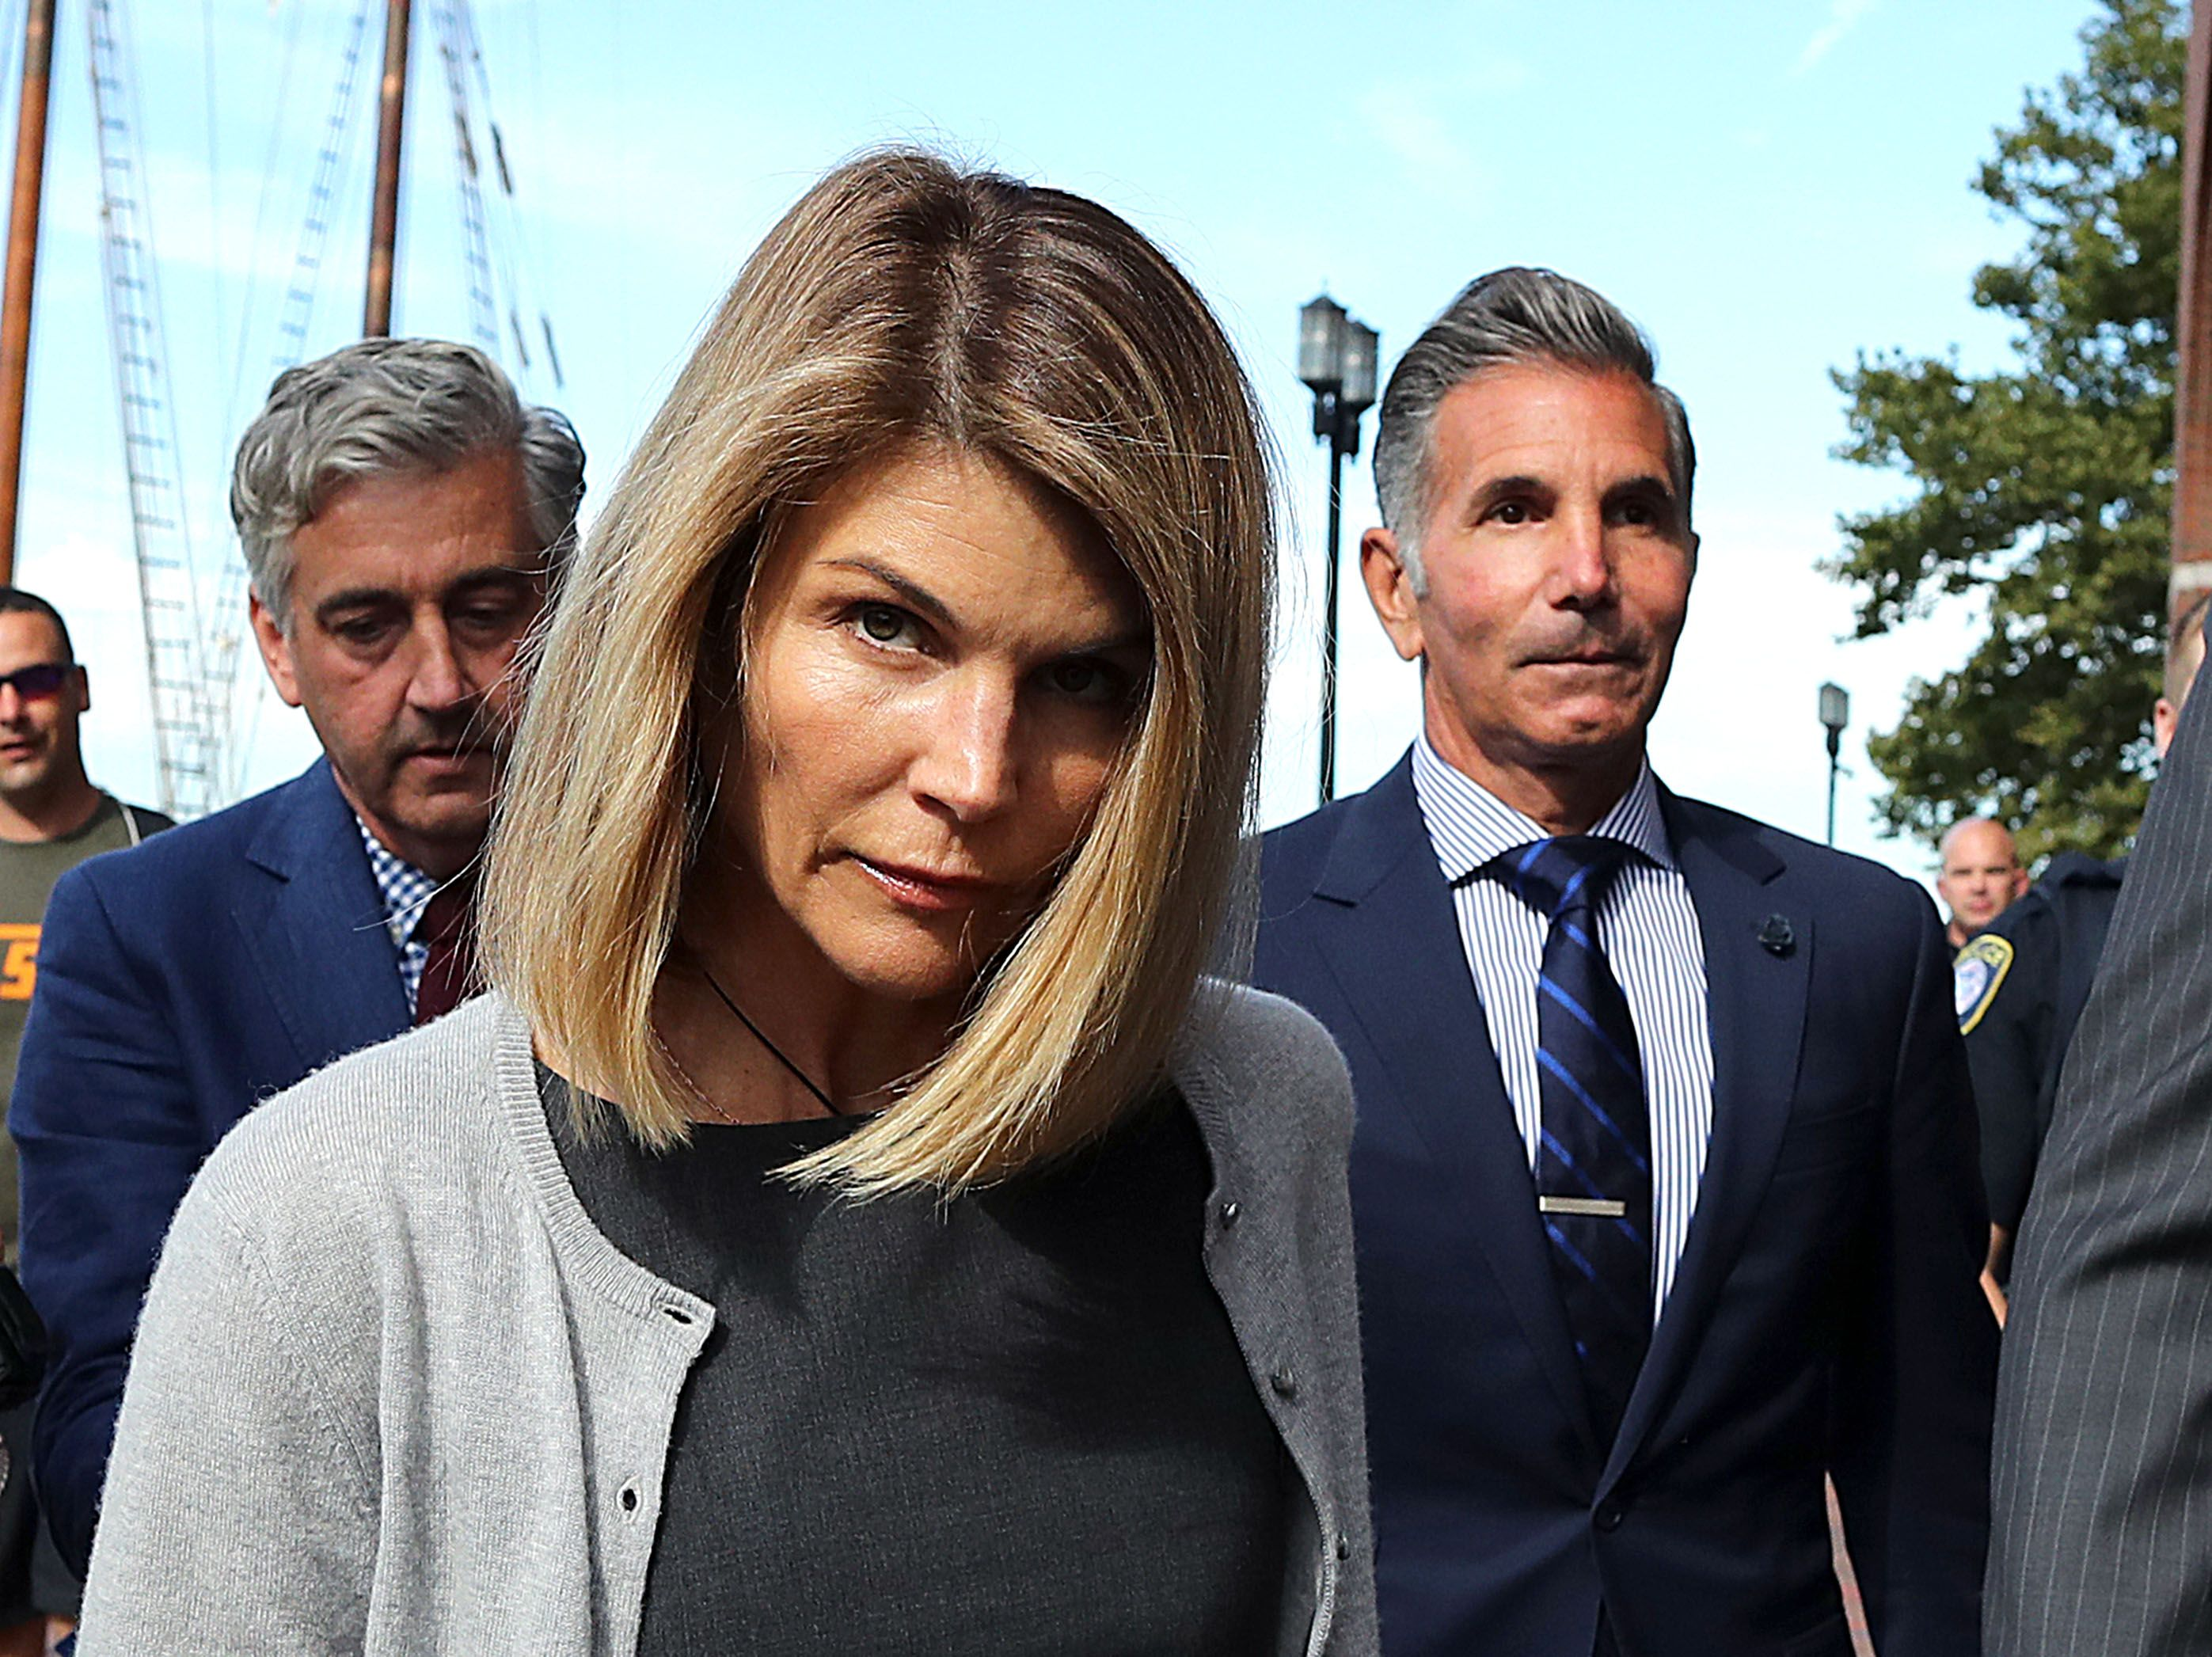 Lori Loughlin and Mossimo Giannulli outside the John Joseph Moakley United States Courthouse in Boston in August 2019 | Source: Getty Images